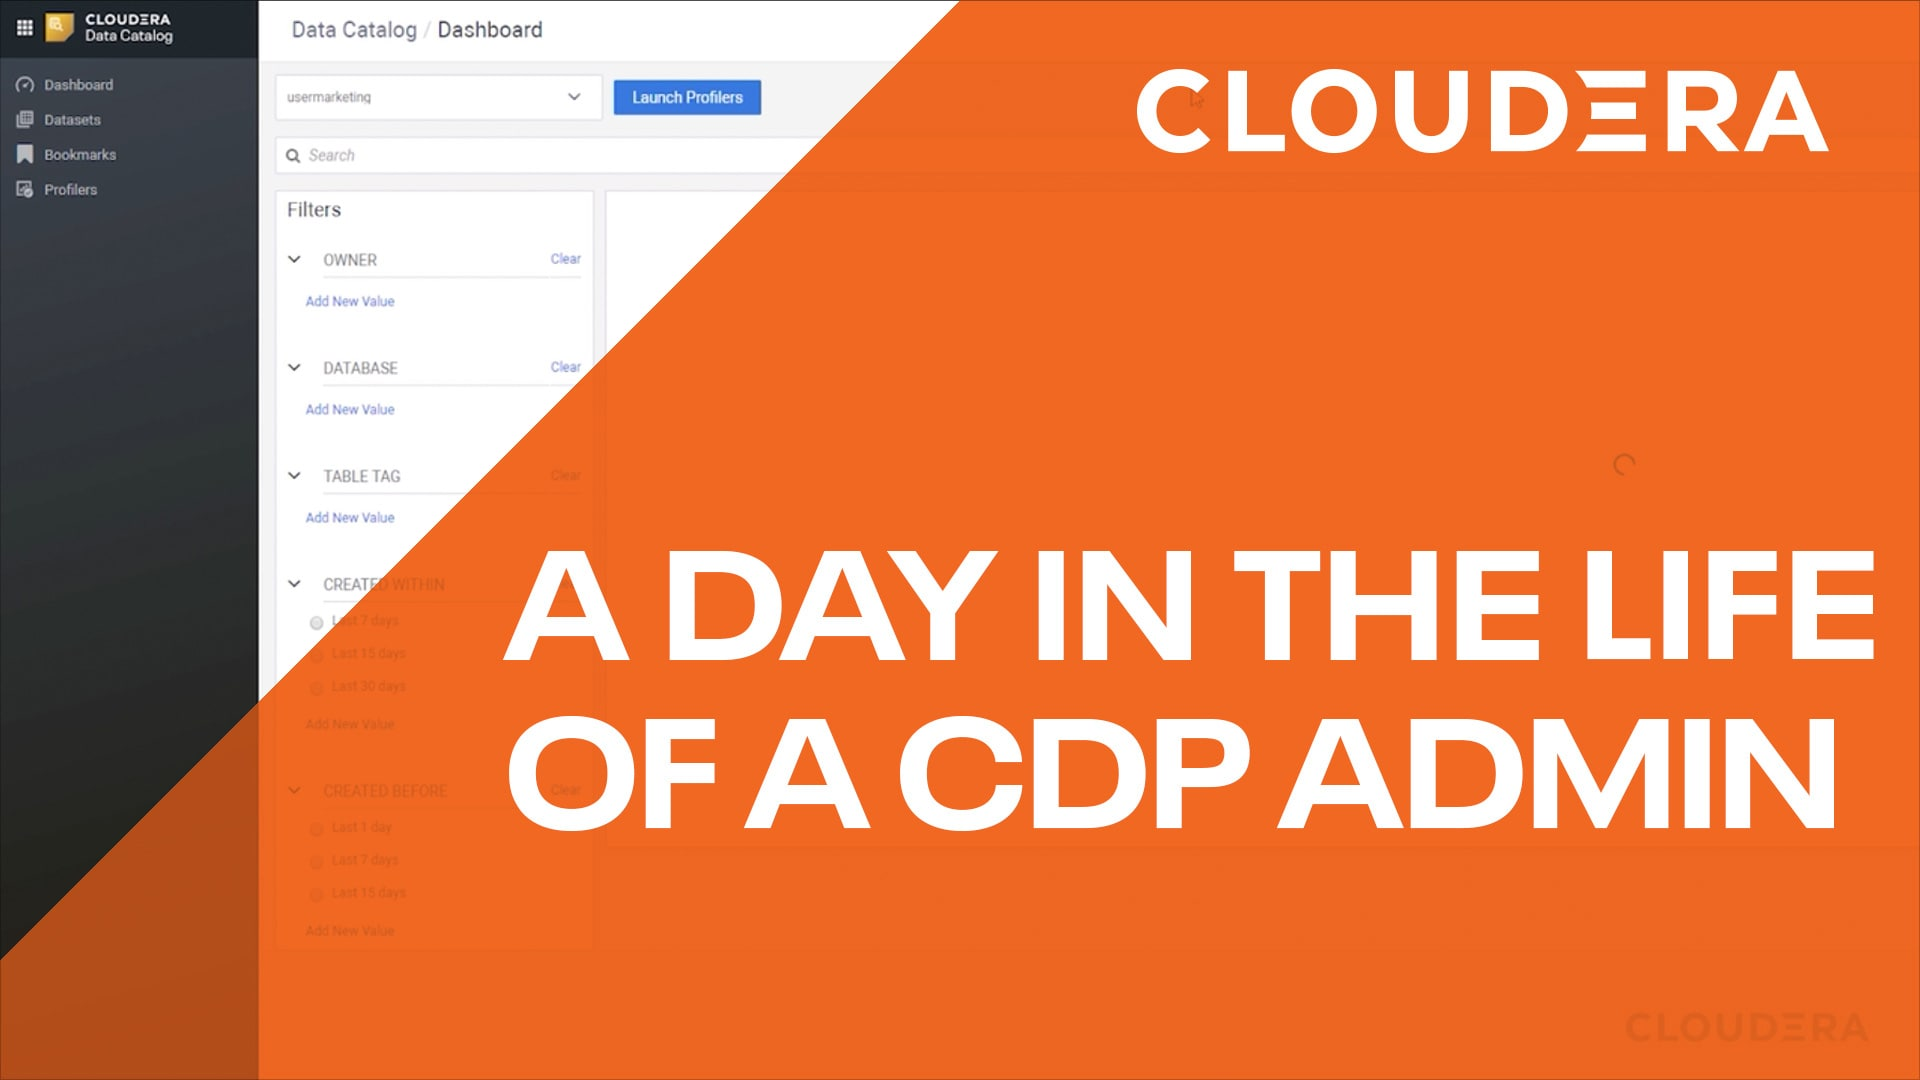 Day in the life of a CDP admin video